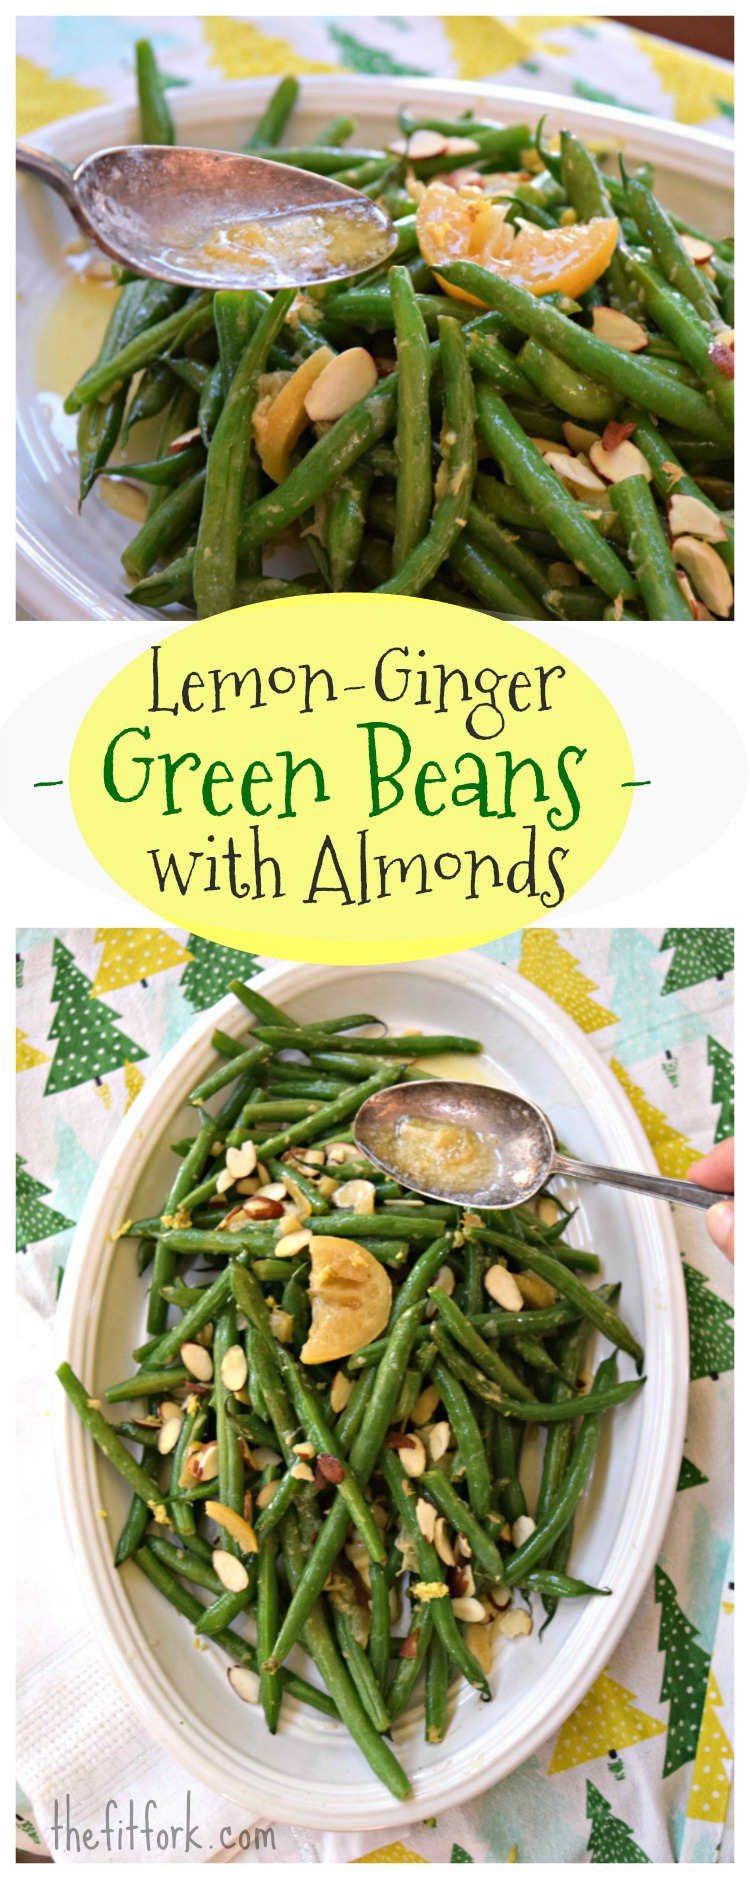 Lemon Ginger Green Beans with Almonds is a quick and easy 10 minute side dish for your holiday dinner.